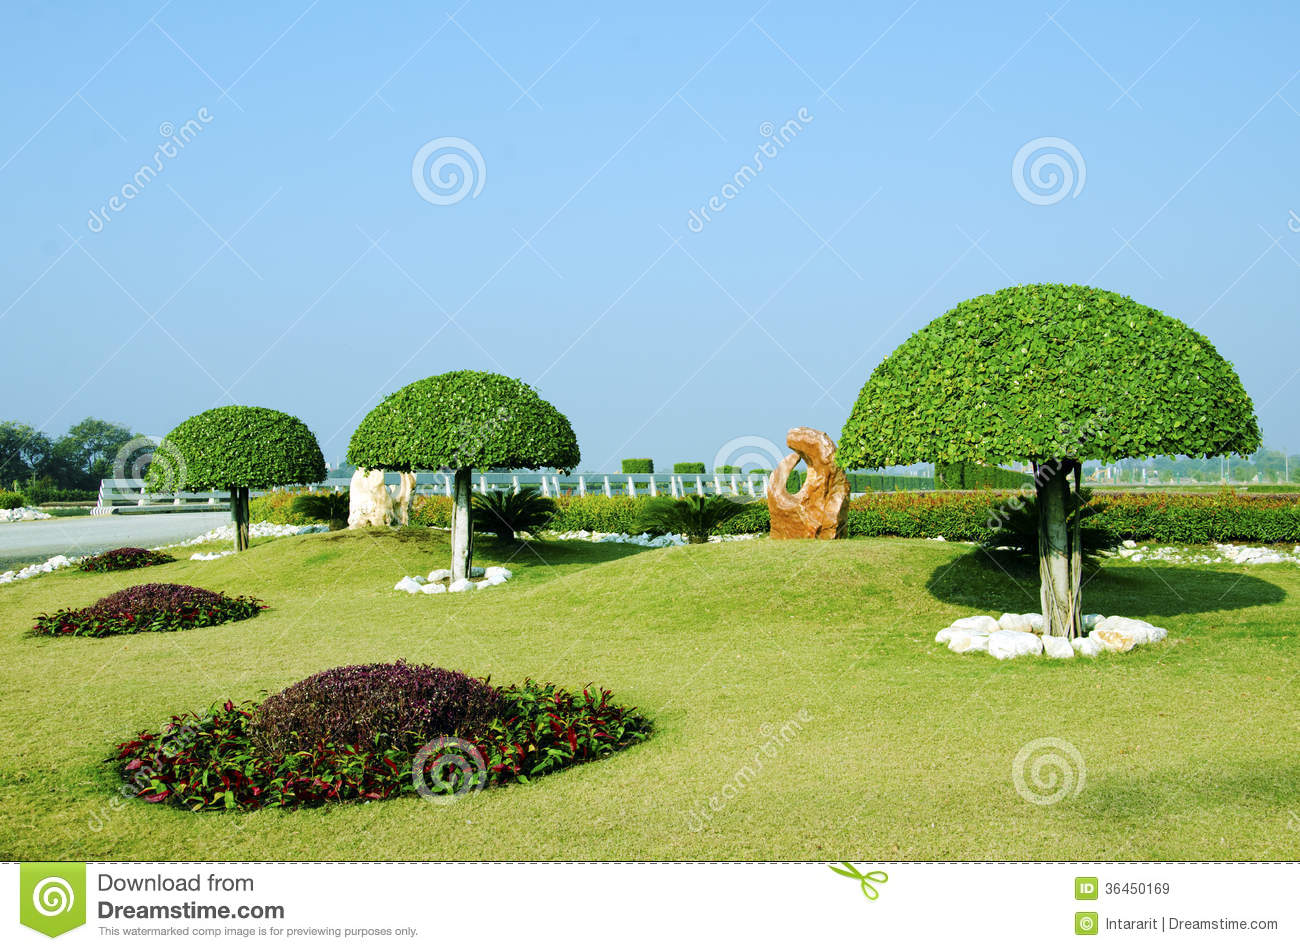 D coration d 39 arbre de jardin images libres de droits for Arbre decoration